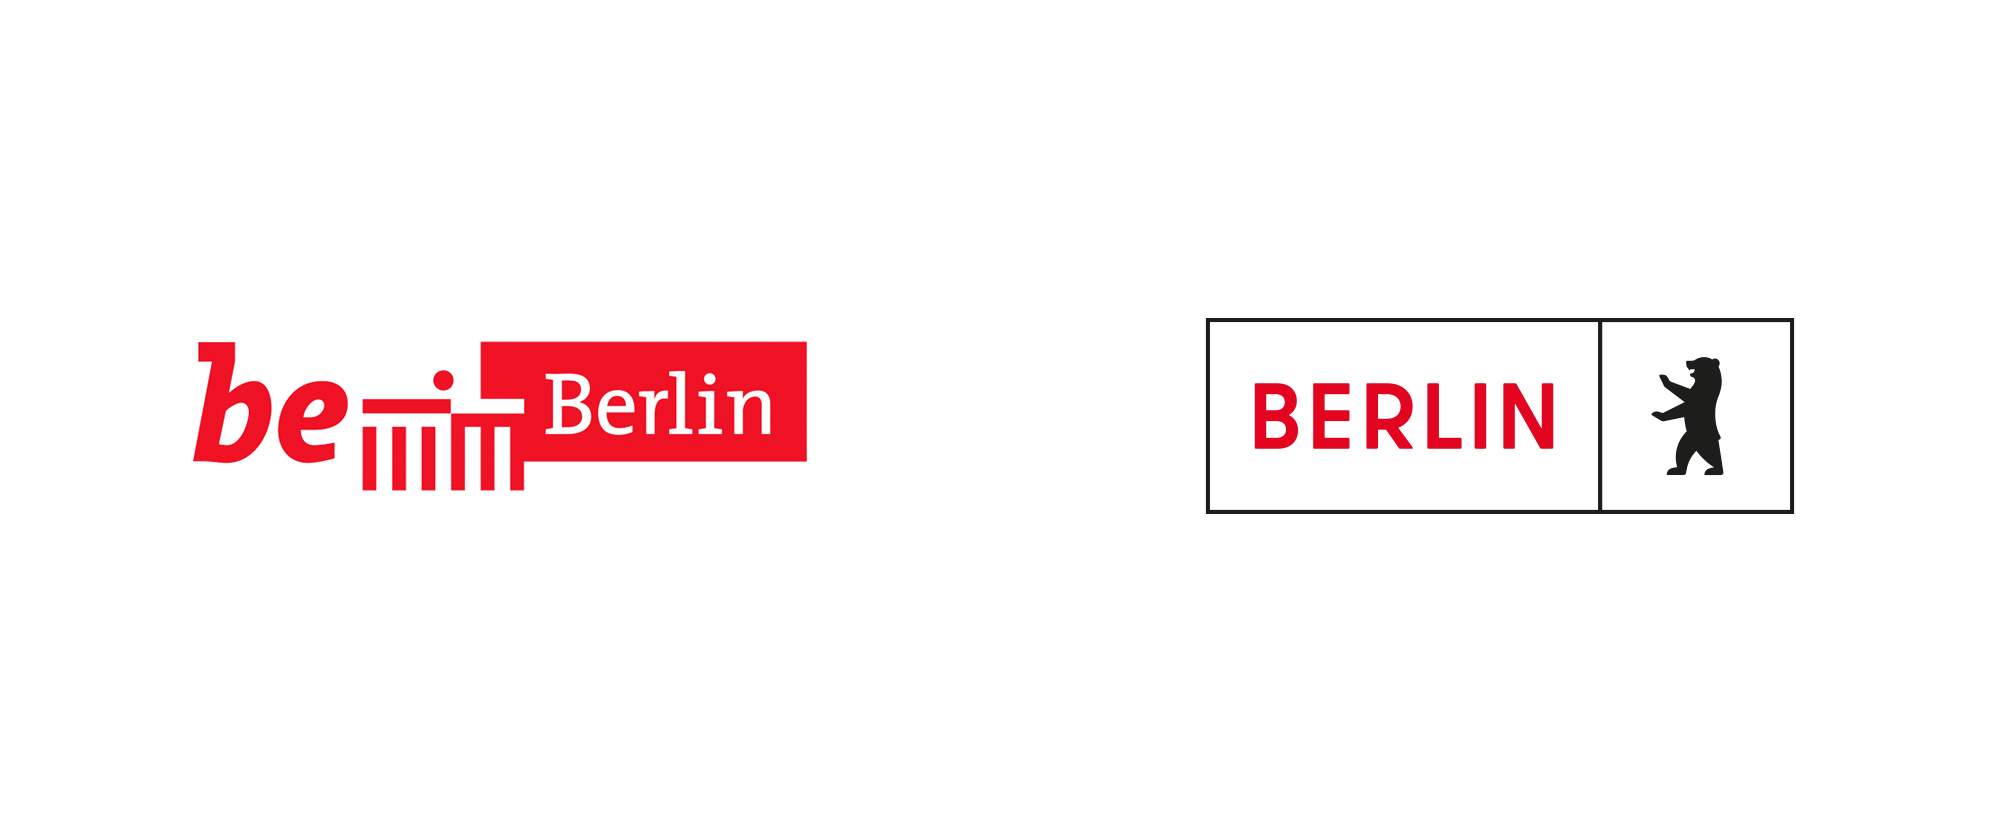 New Logo and Identity for State of Berlin by Jung von Matt